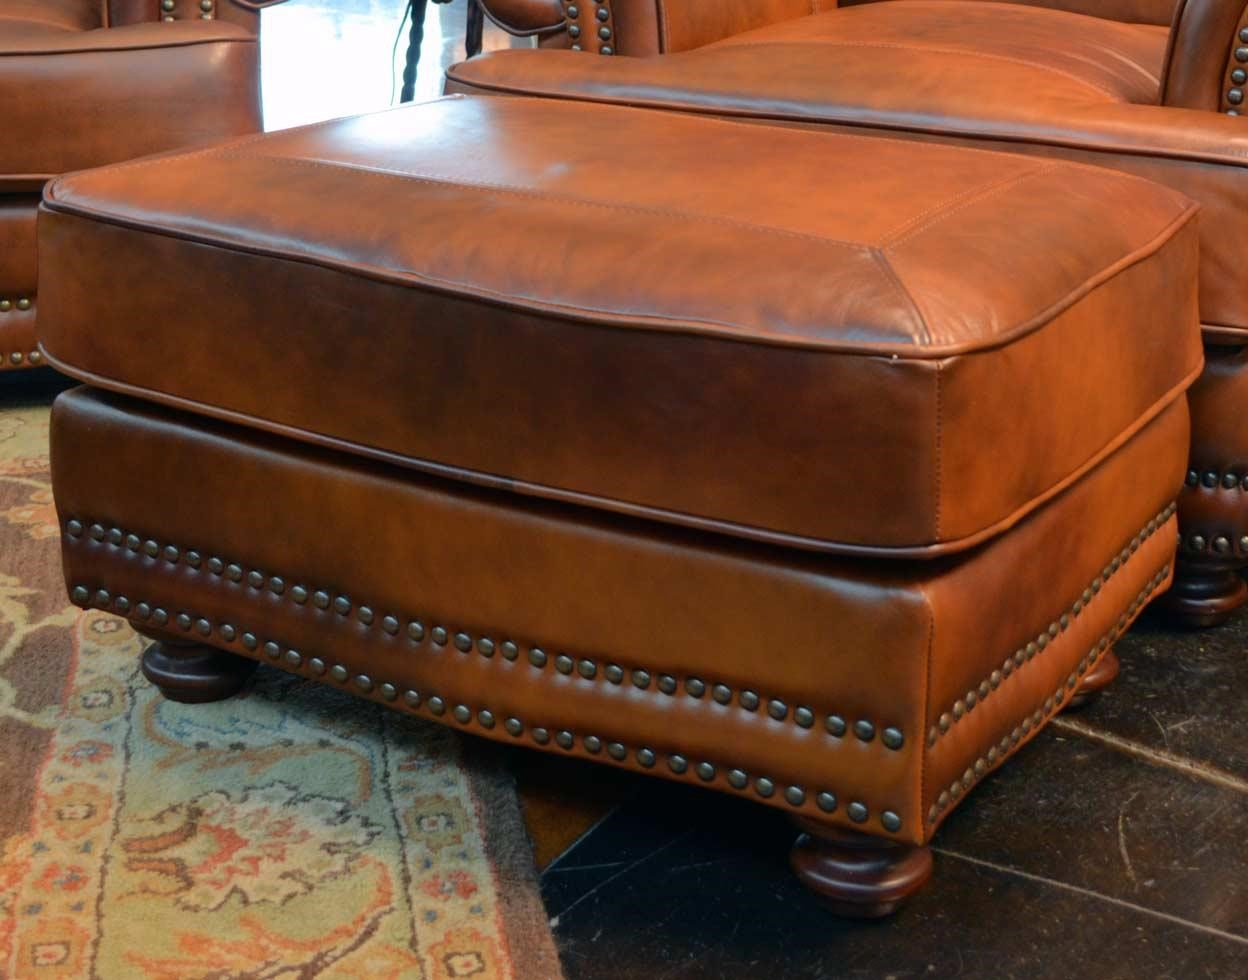 LG Interiors Cowboy Cowboy Leather Ottoman   Great American Home Store    Ottomans